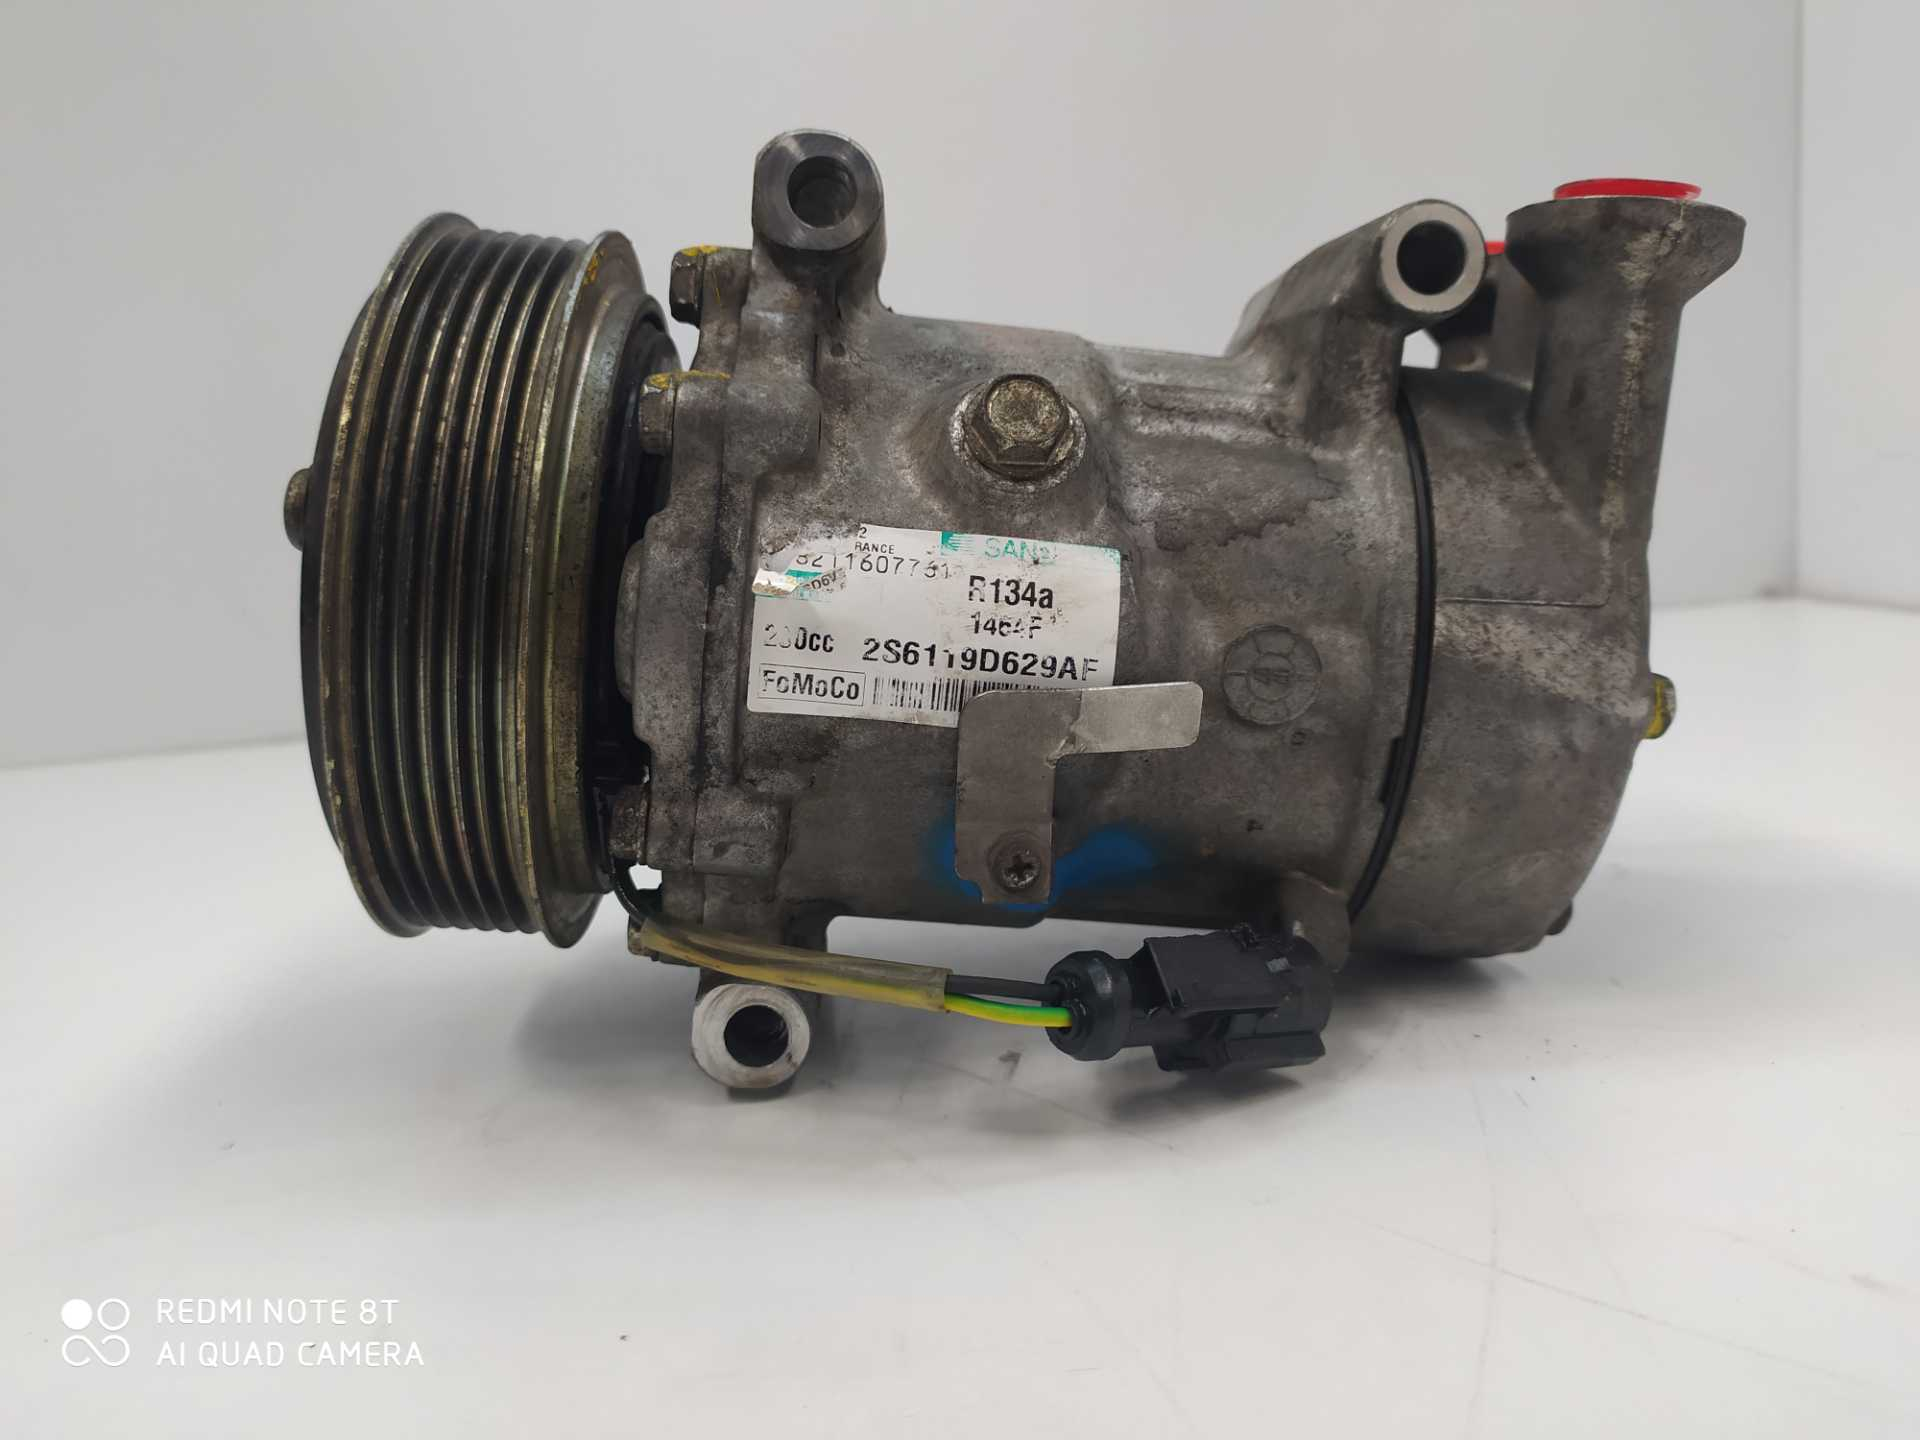 COMPRESOR AIRE ACOND. FORD FIESTA V 1.6 TDCi (66 KW / 90 CV) (11.2004 - 06.2008)